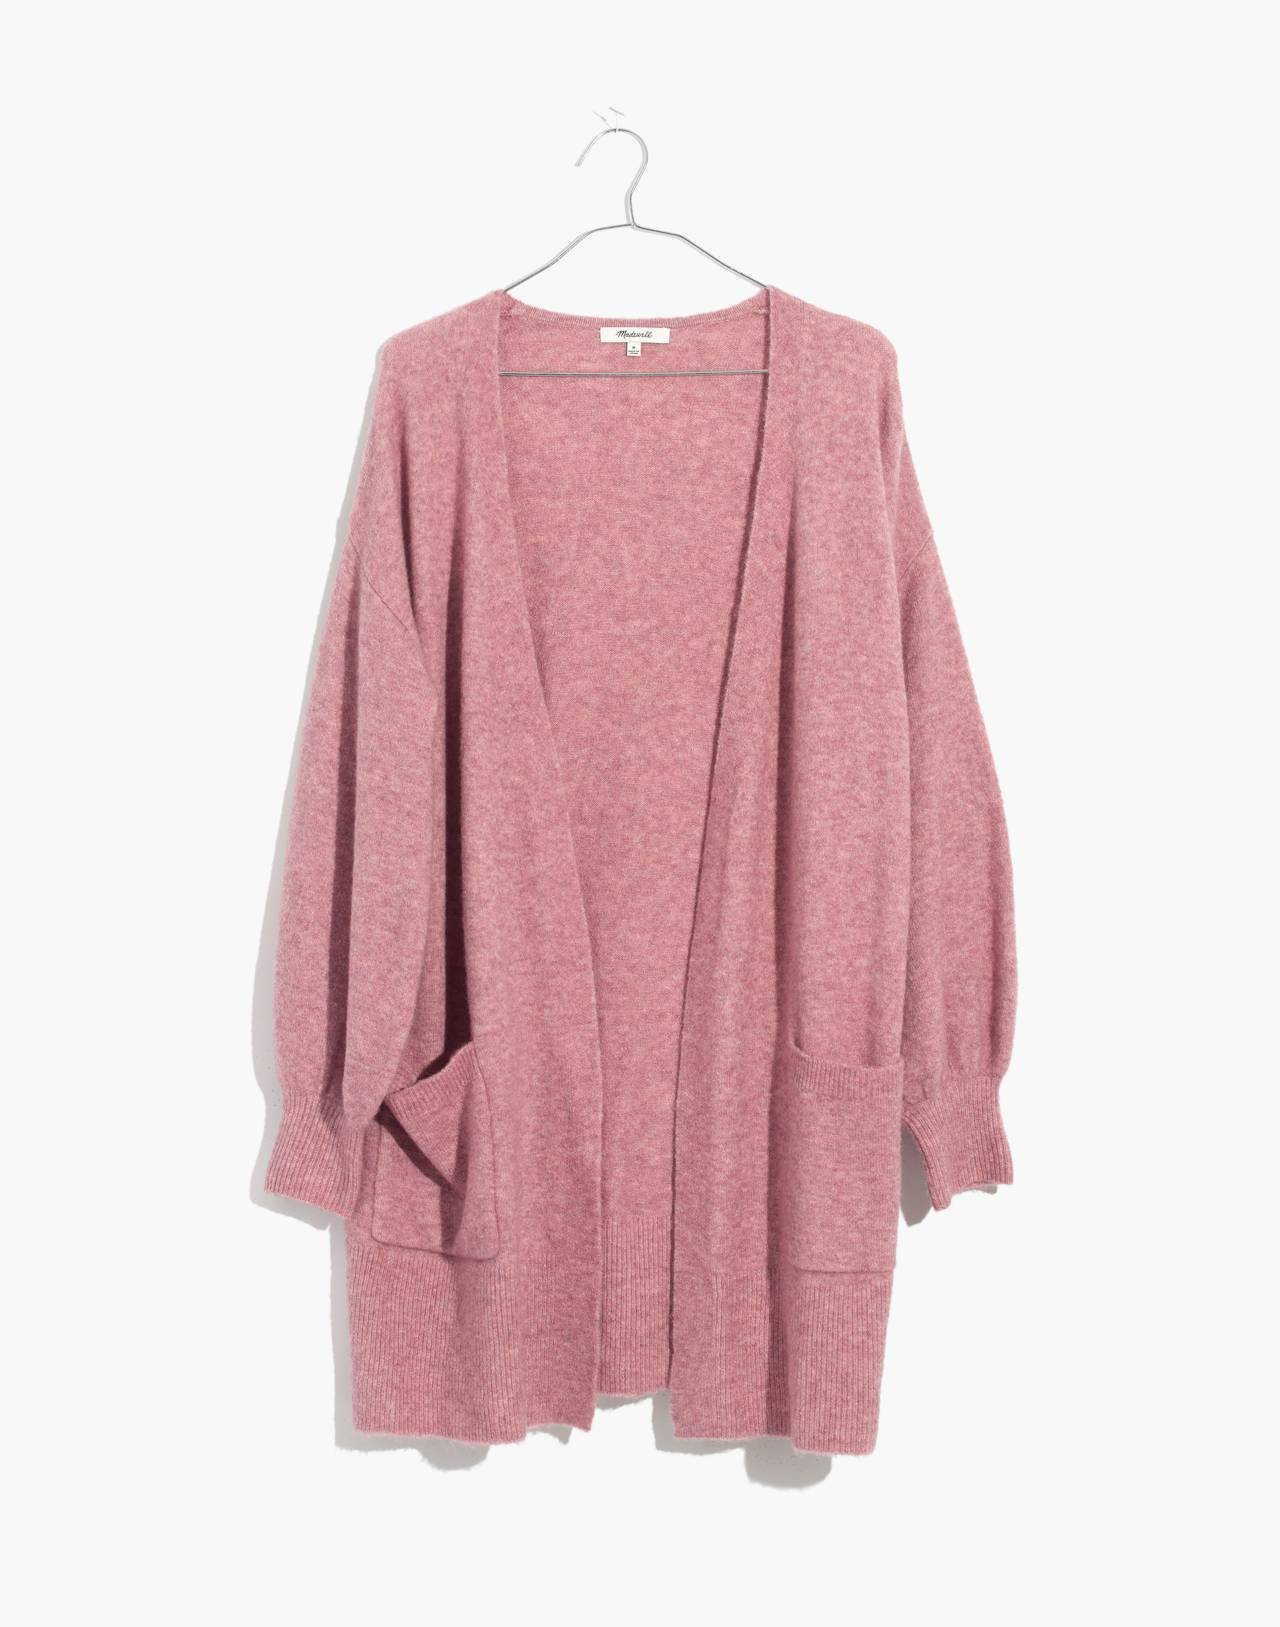 Edgewater Bubble-Sleeve Cardigan Sweater in heather mulberry image 4